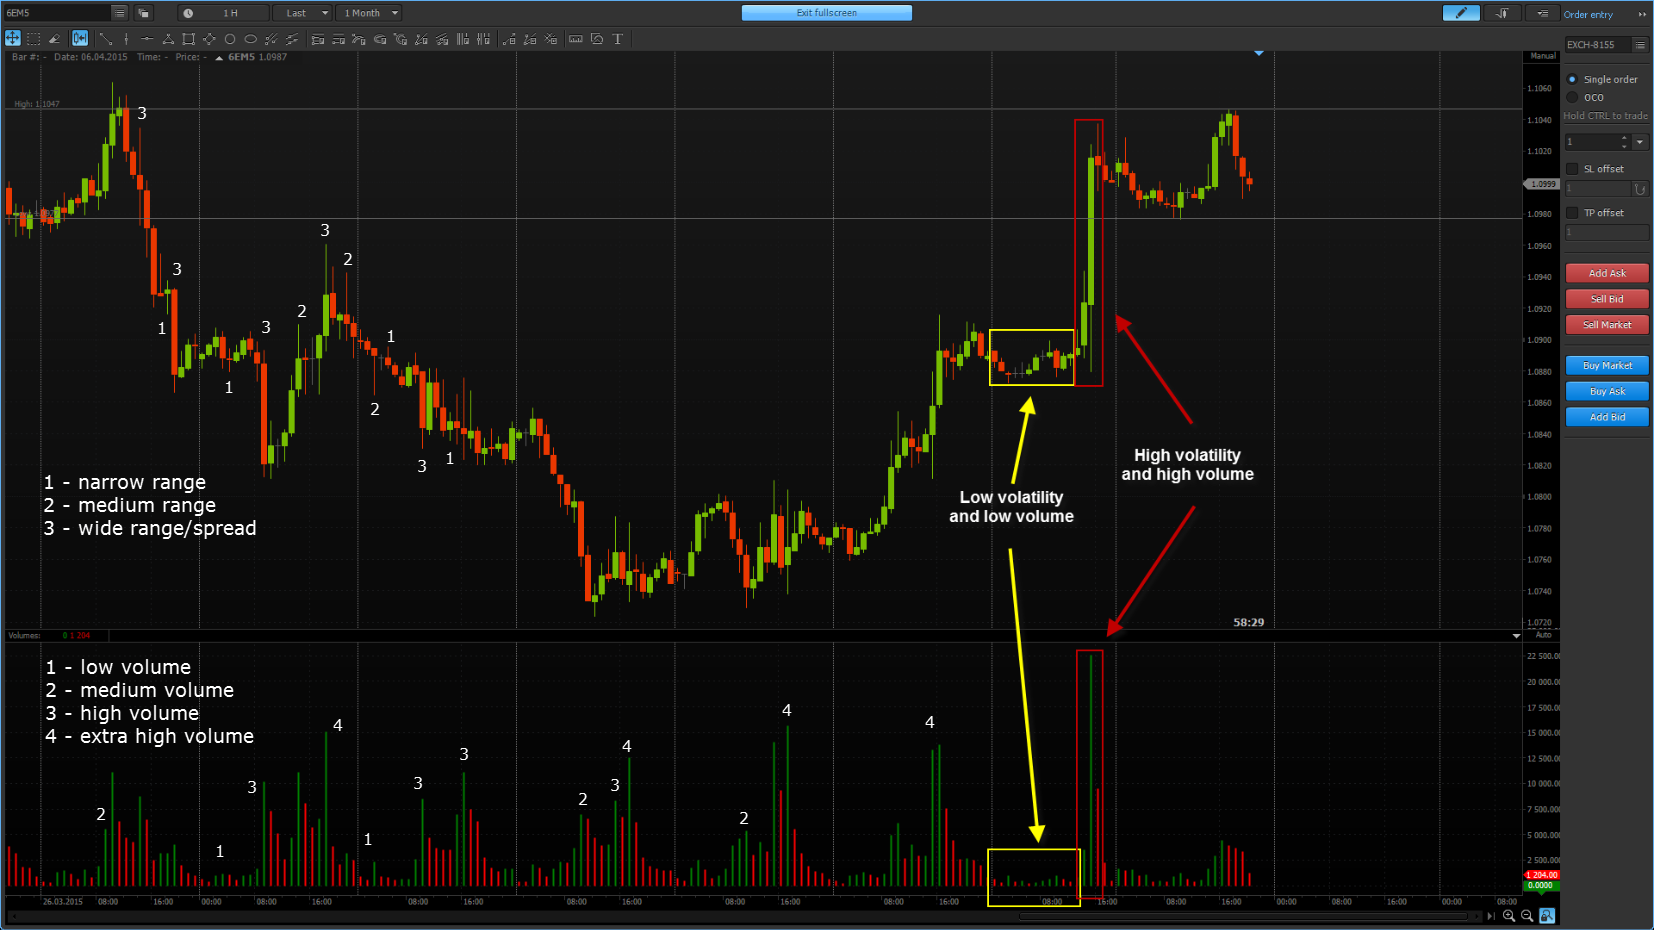 Volume spread analysis in Protrader